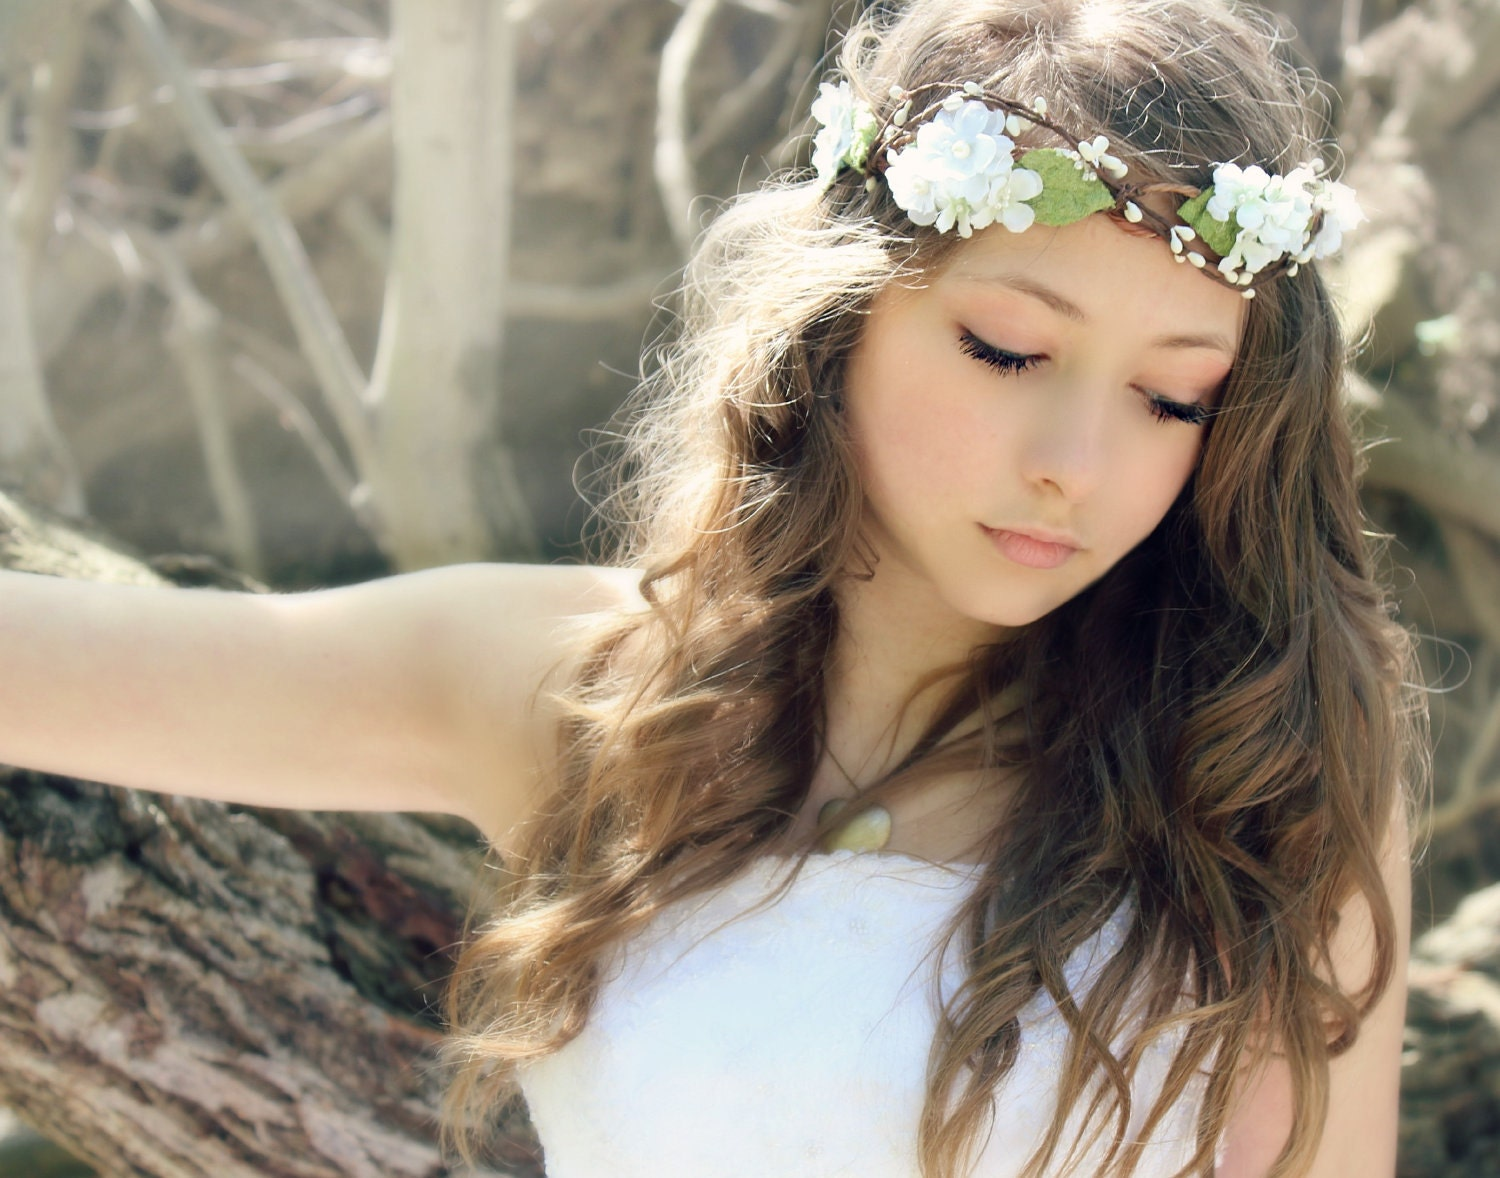 flower headband tumblr girl - photo #32